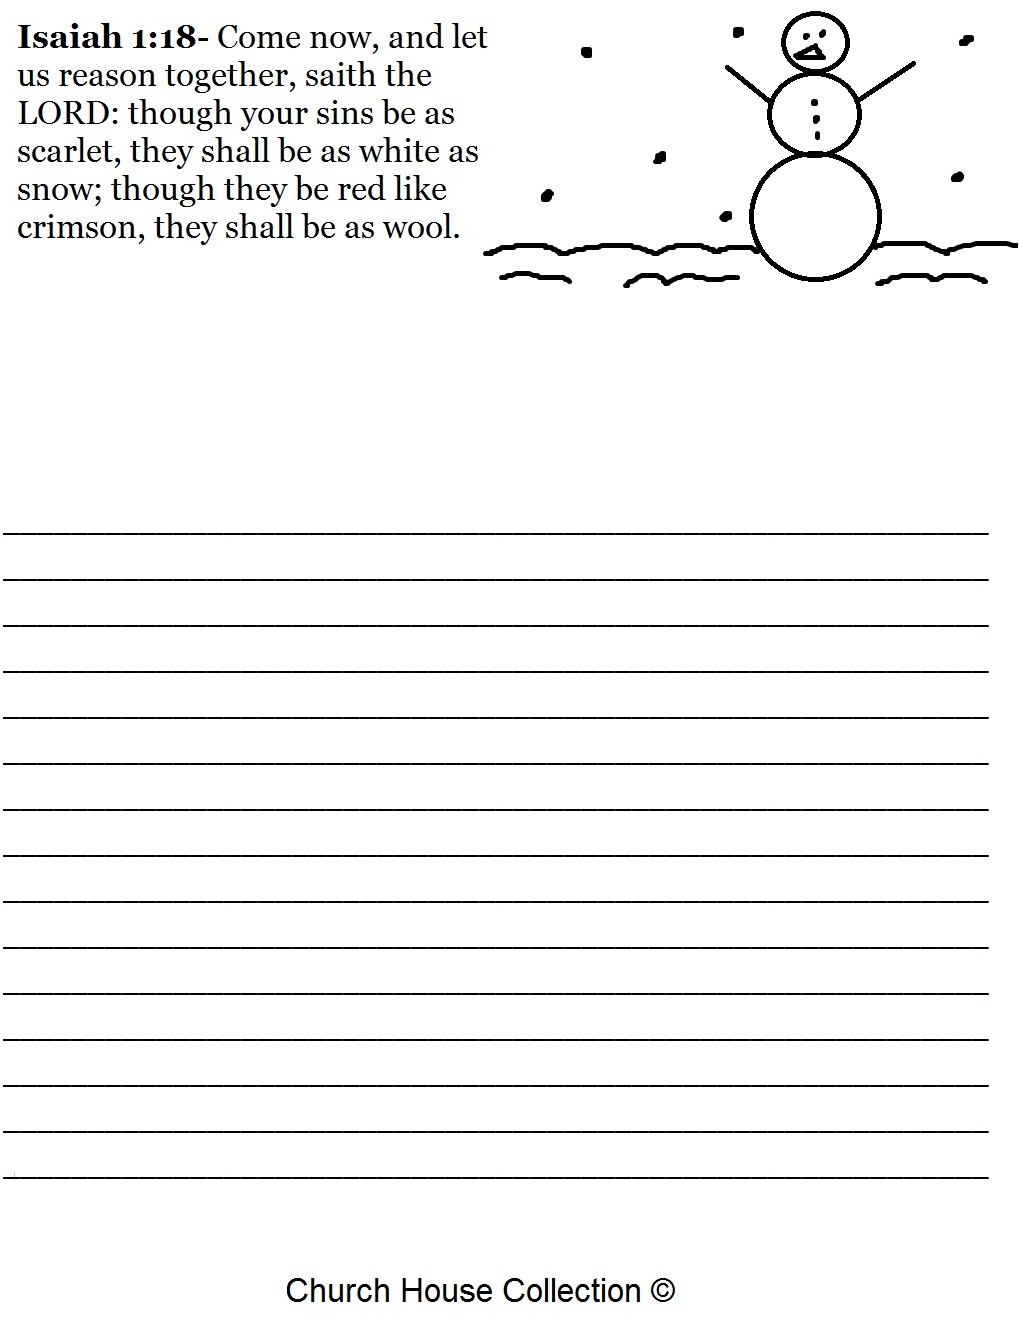 Free Christmas Snowman Isaiah 1:18 Writing Paper Printable Template ...